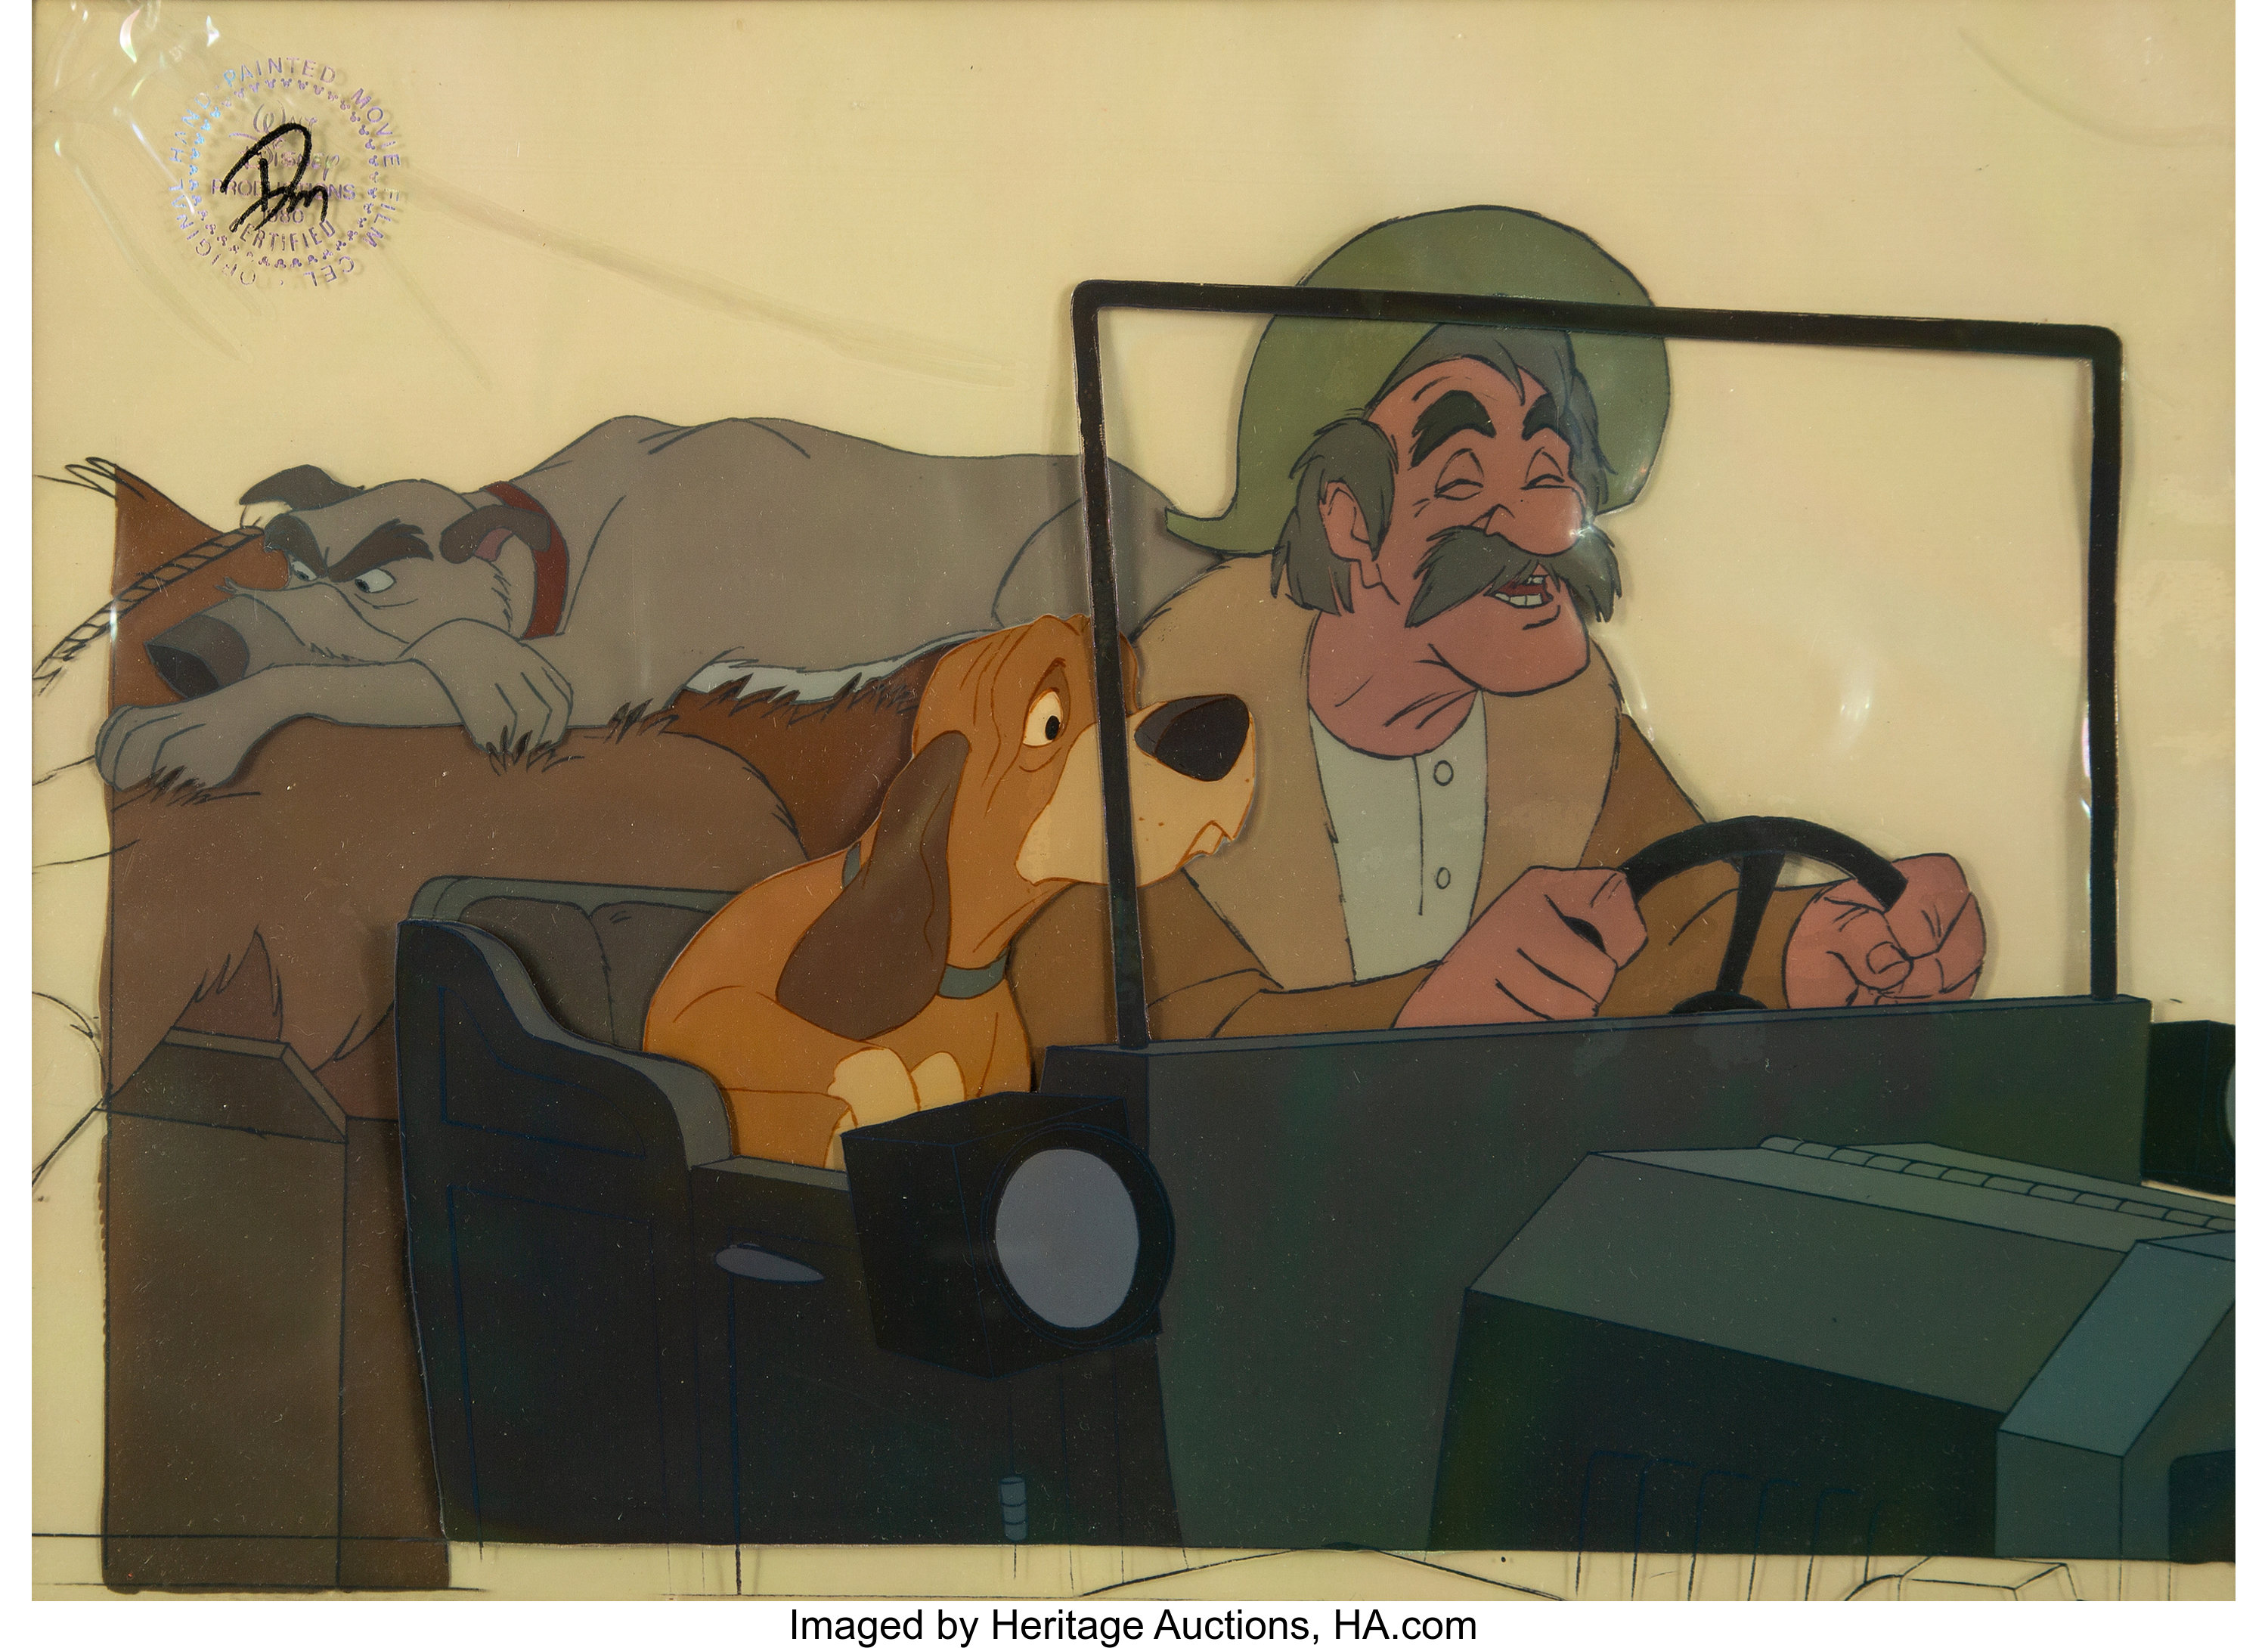 Amos Slade Fox And The Hound 2 The Fox And The Hound Amos Slade Production Cel With Signed Mat Lot 63758 Heritage Auctions https comics ha com itm animation art production cel the fox and the hound amos slade production cel with signed mat walt disney 1981 a 7216 63758 s